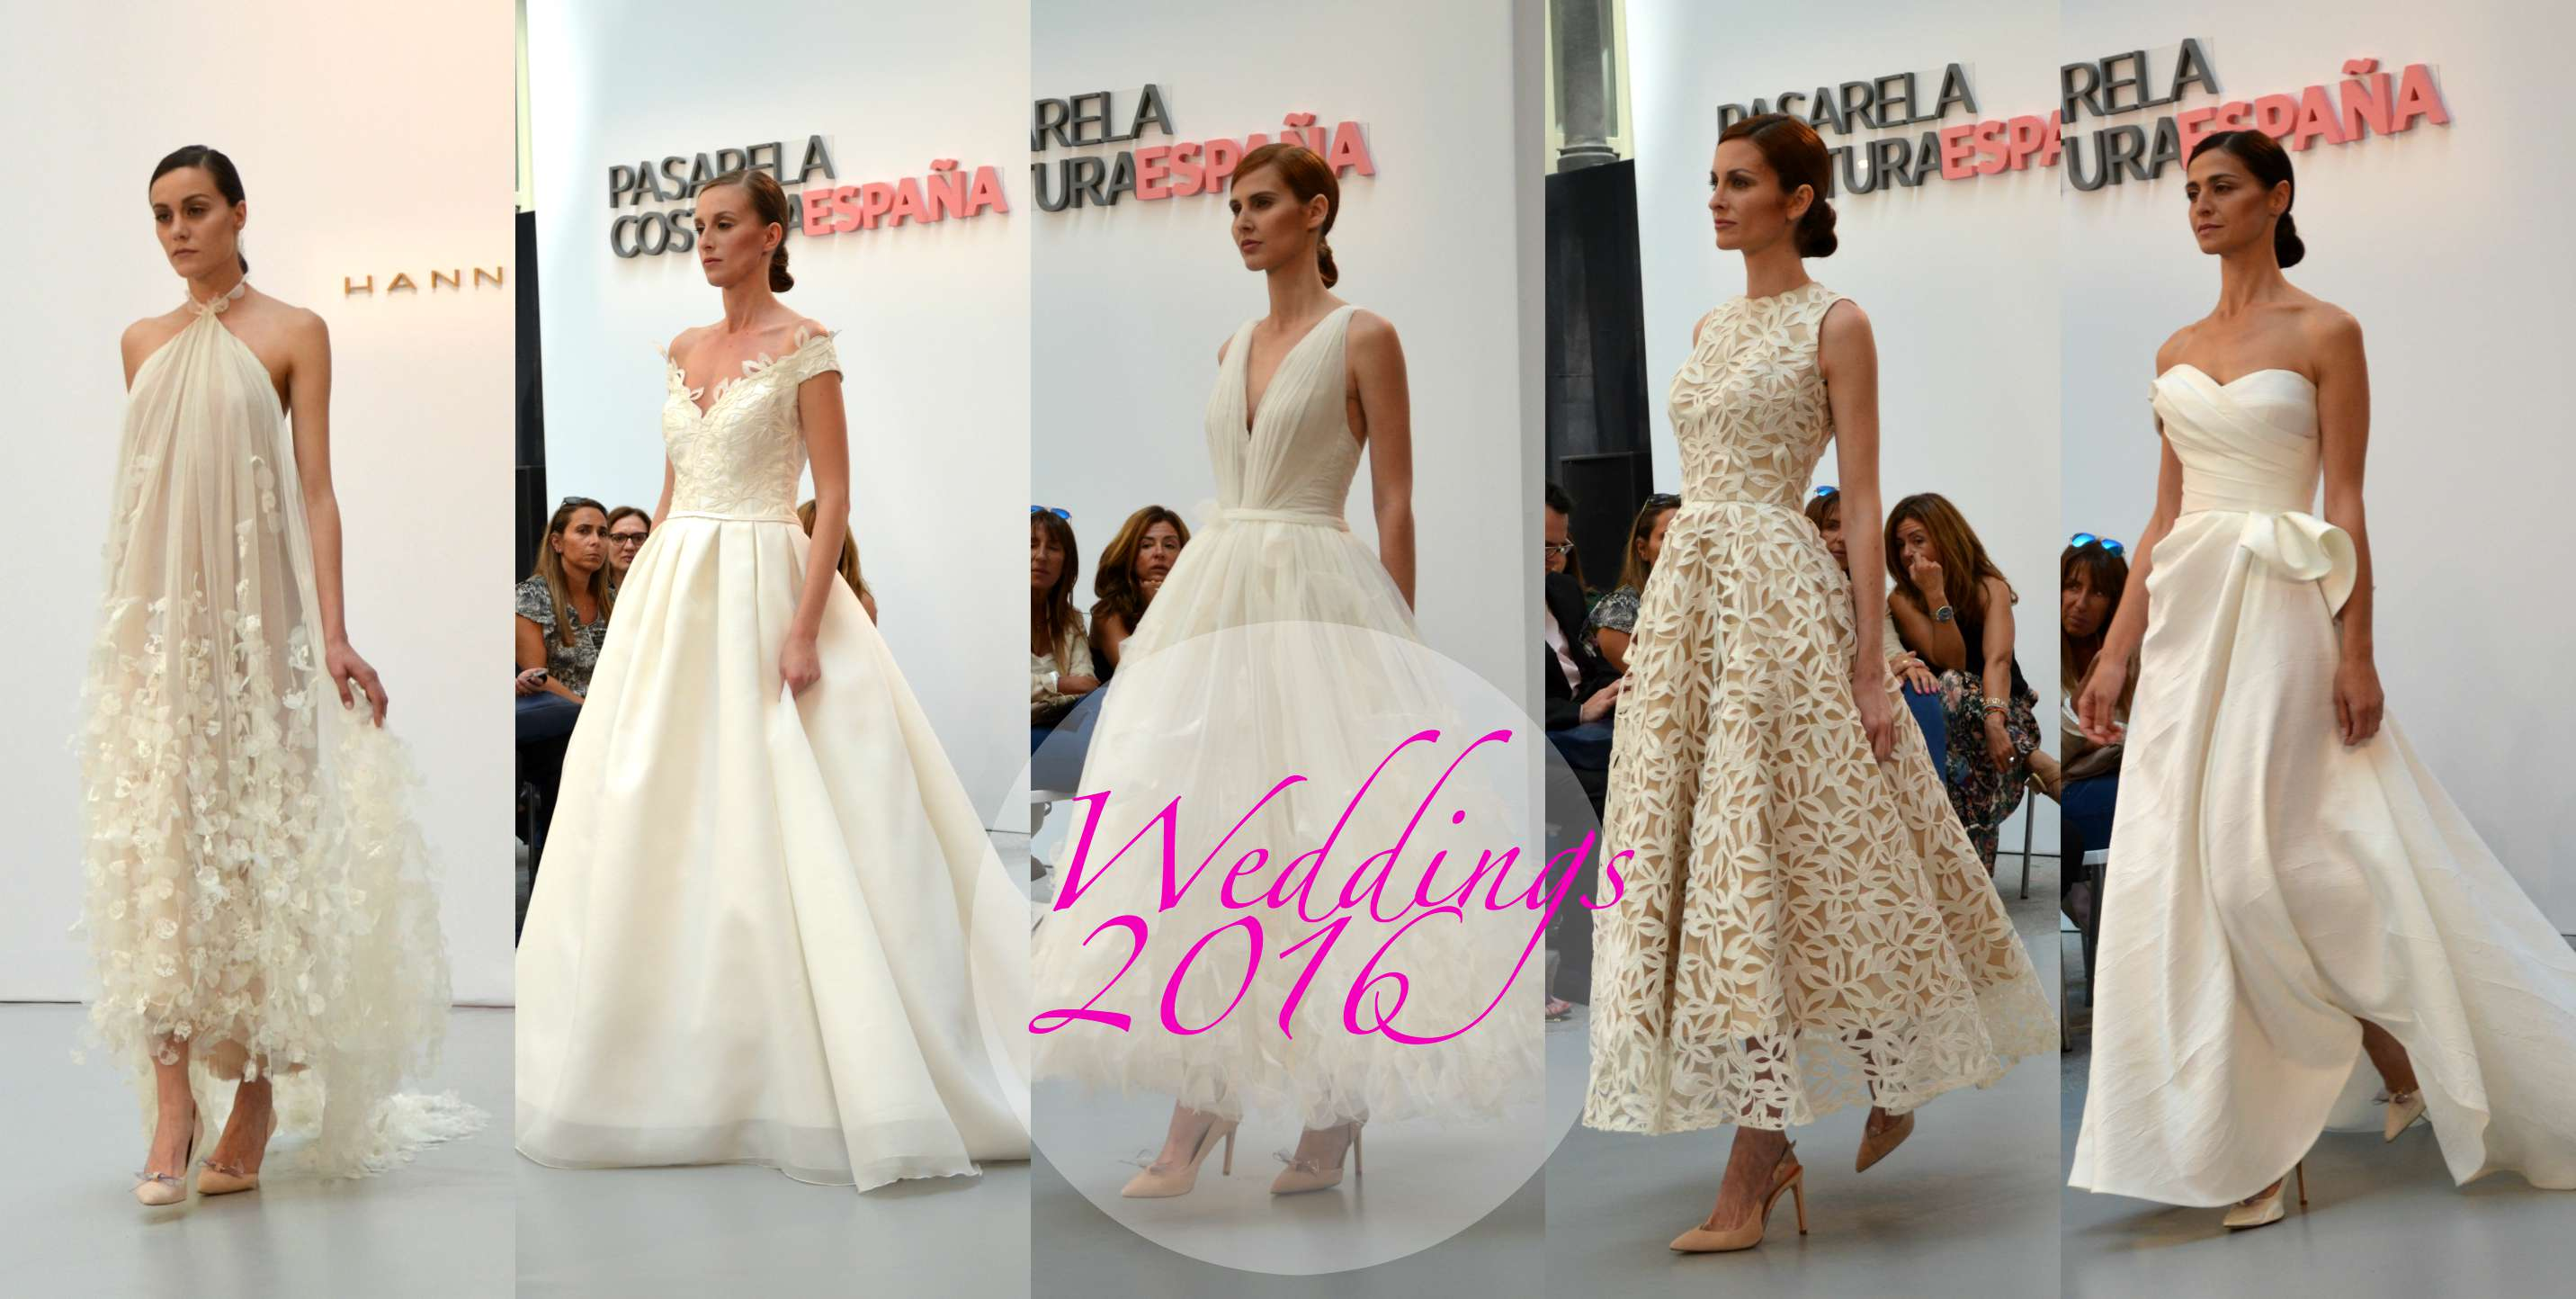 weddings 2016 trends HannibalLaguna